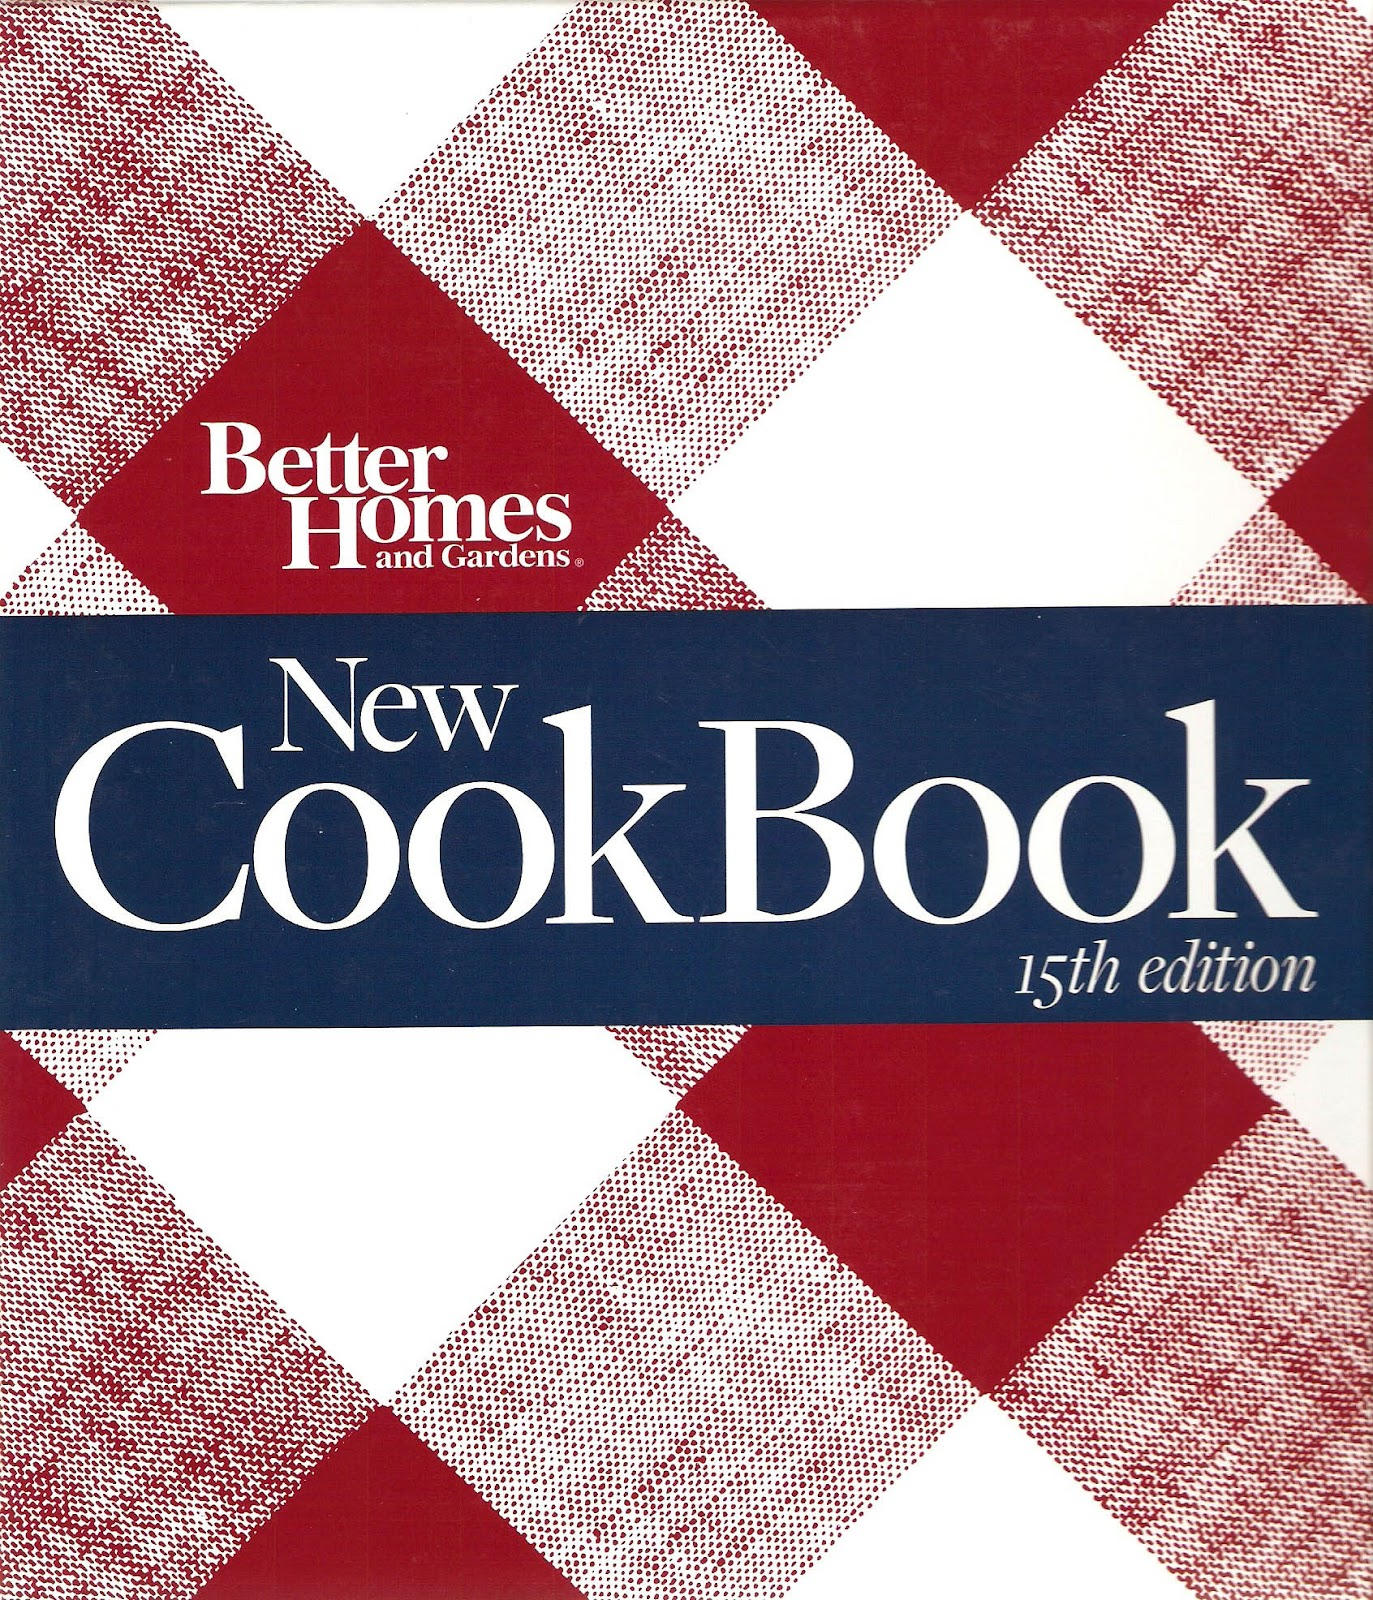 Cookbook Red Checkered Cover : The iowa housewife better homes and gardens red plaid